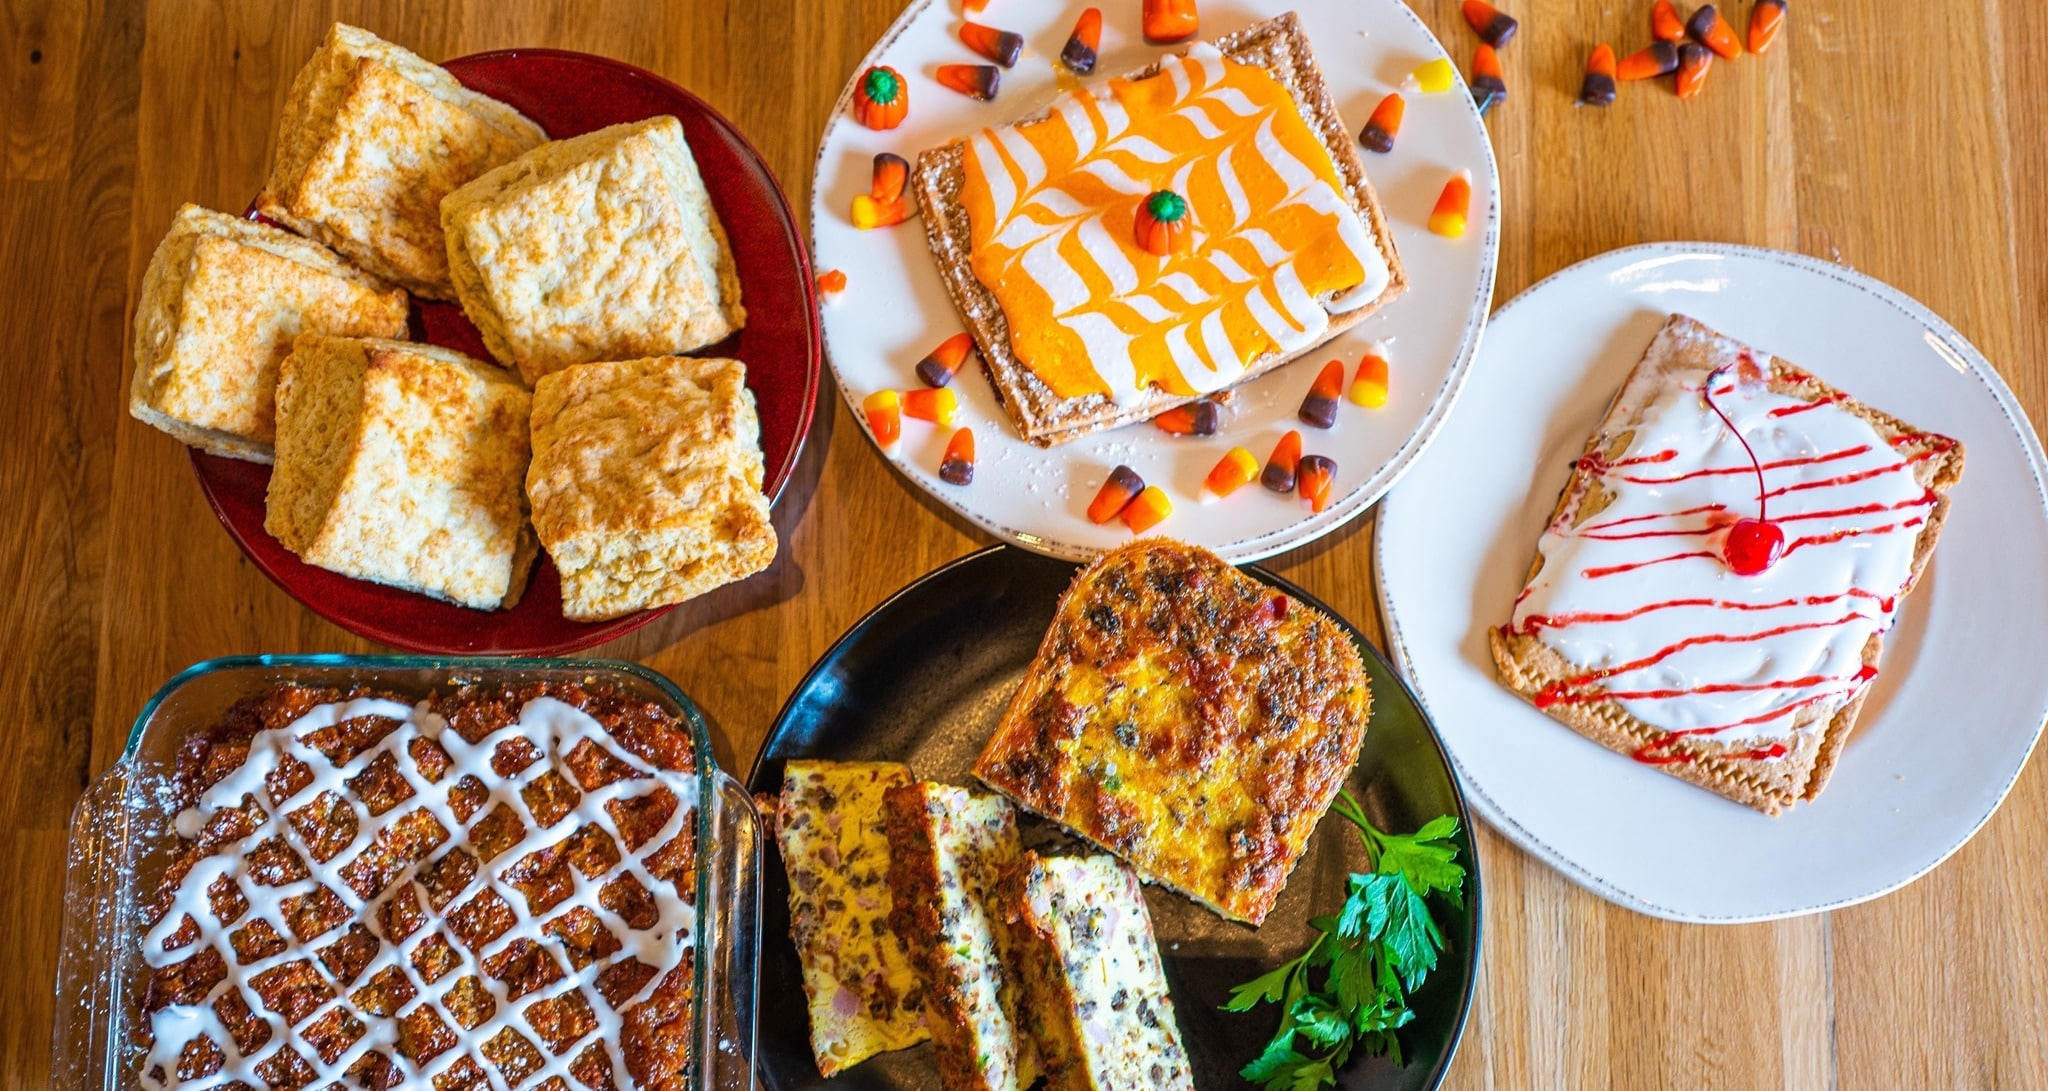 Where to Go for Brunch in Baltimore